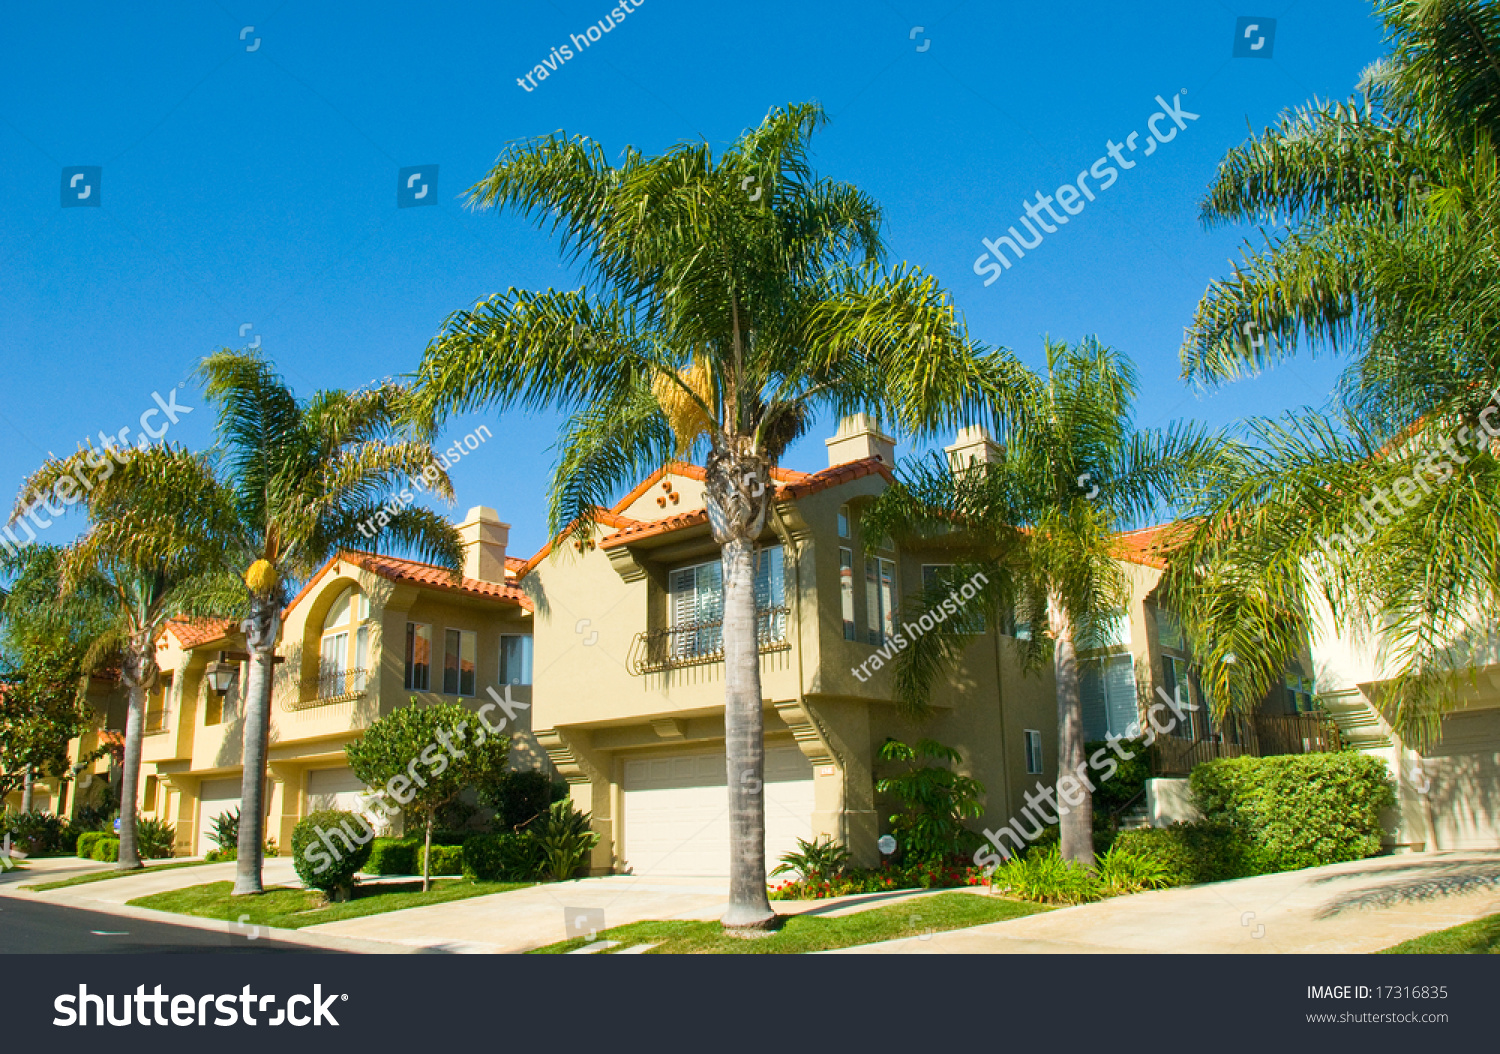 Queen Palm Trees Growing Among California Luxury Homes